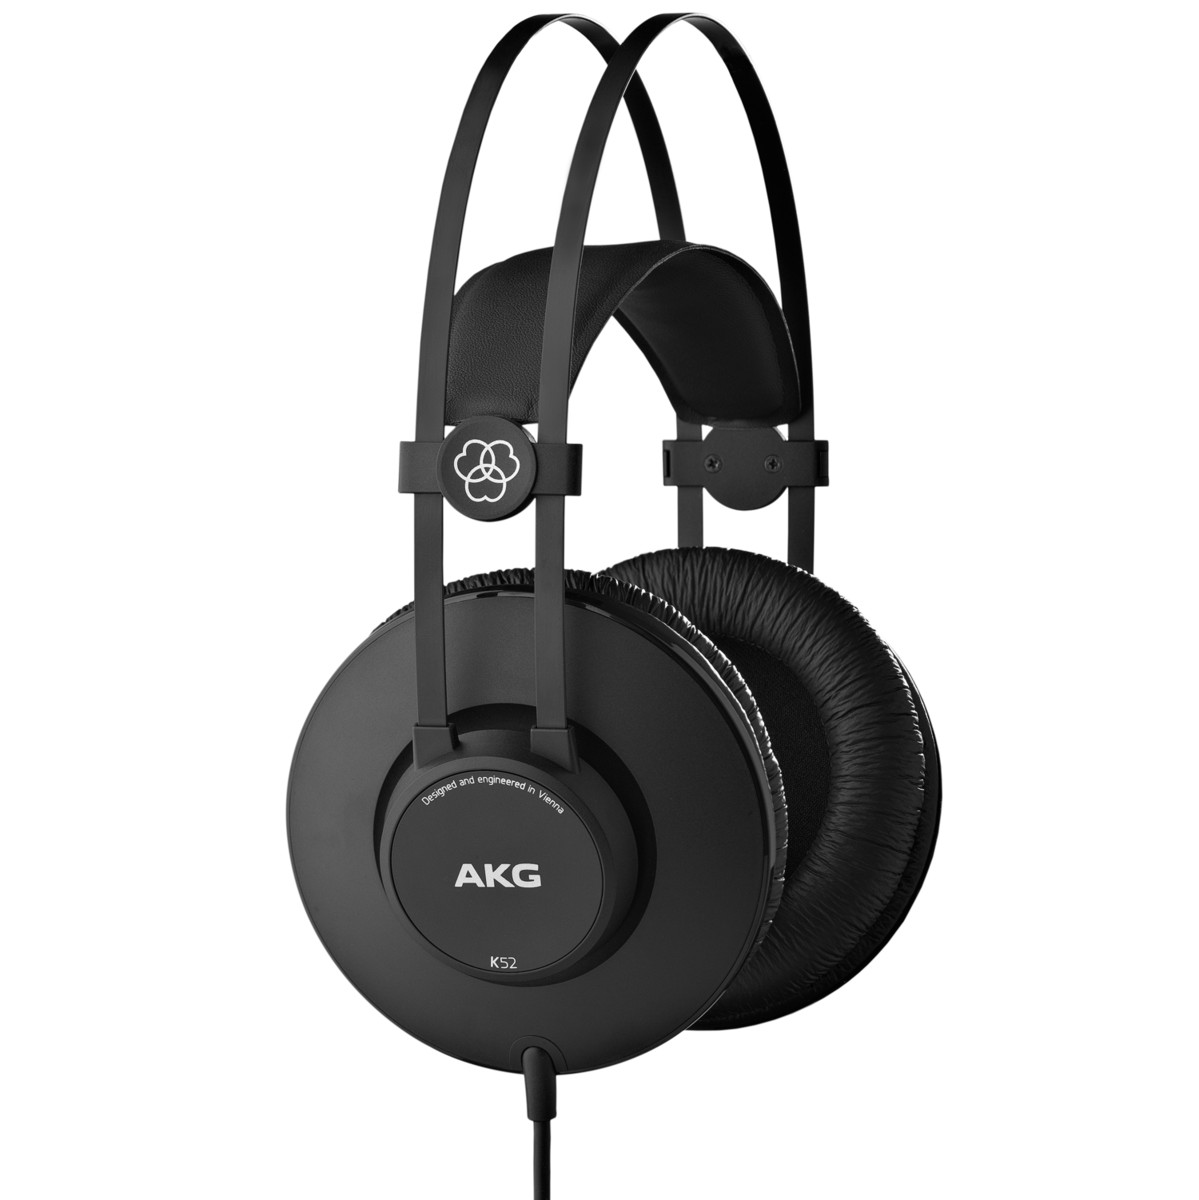 Image of AKG K52 Closed Back Studio Headphones